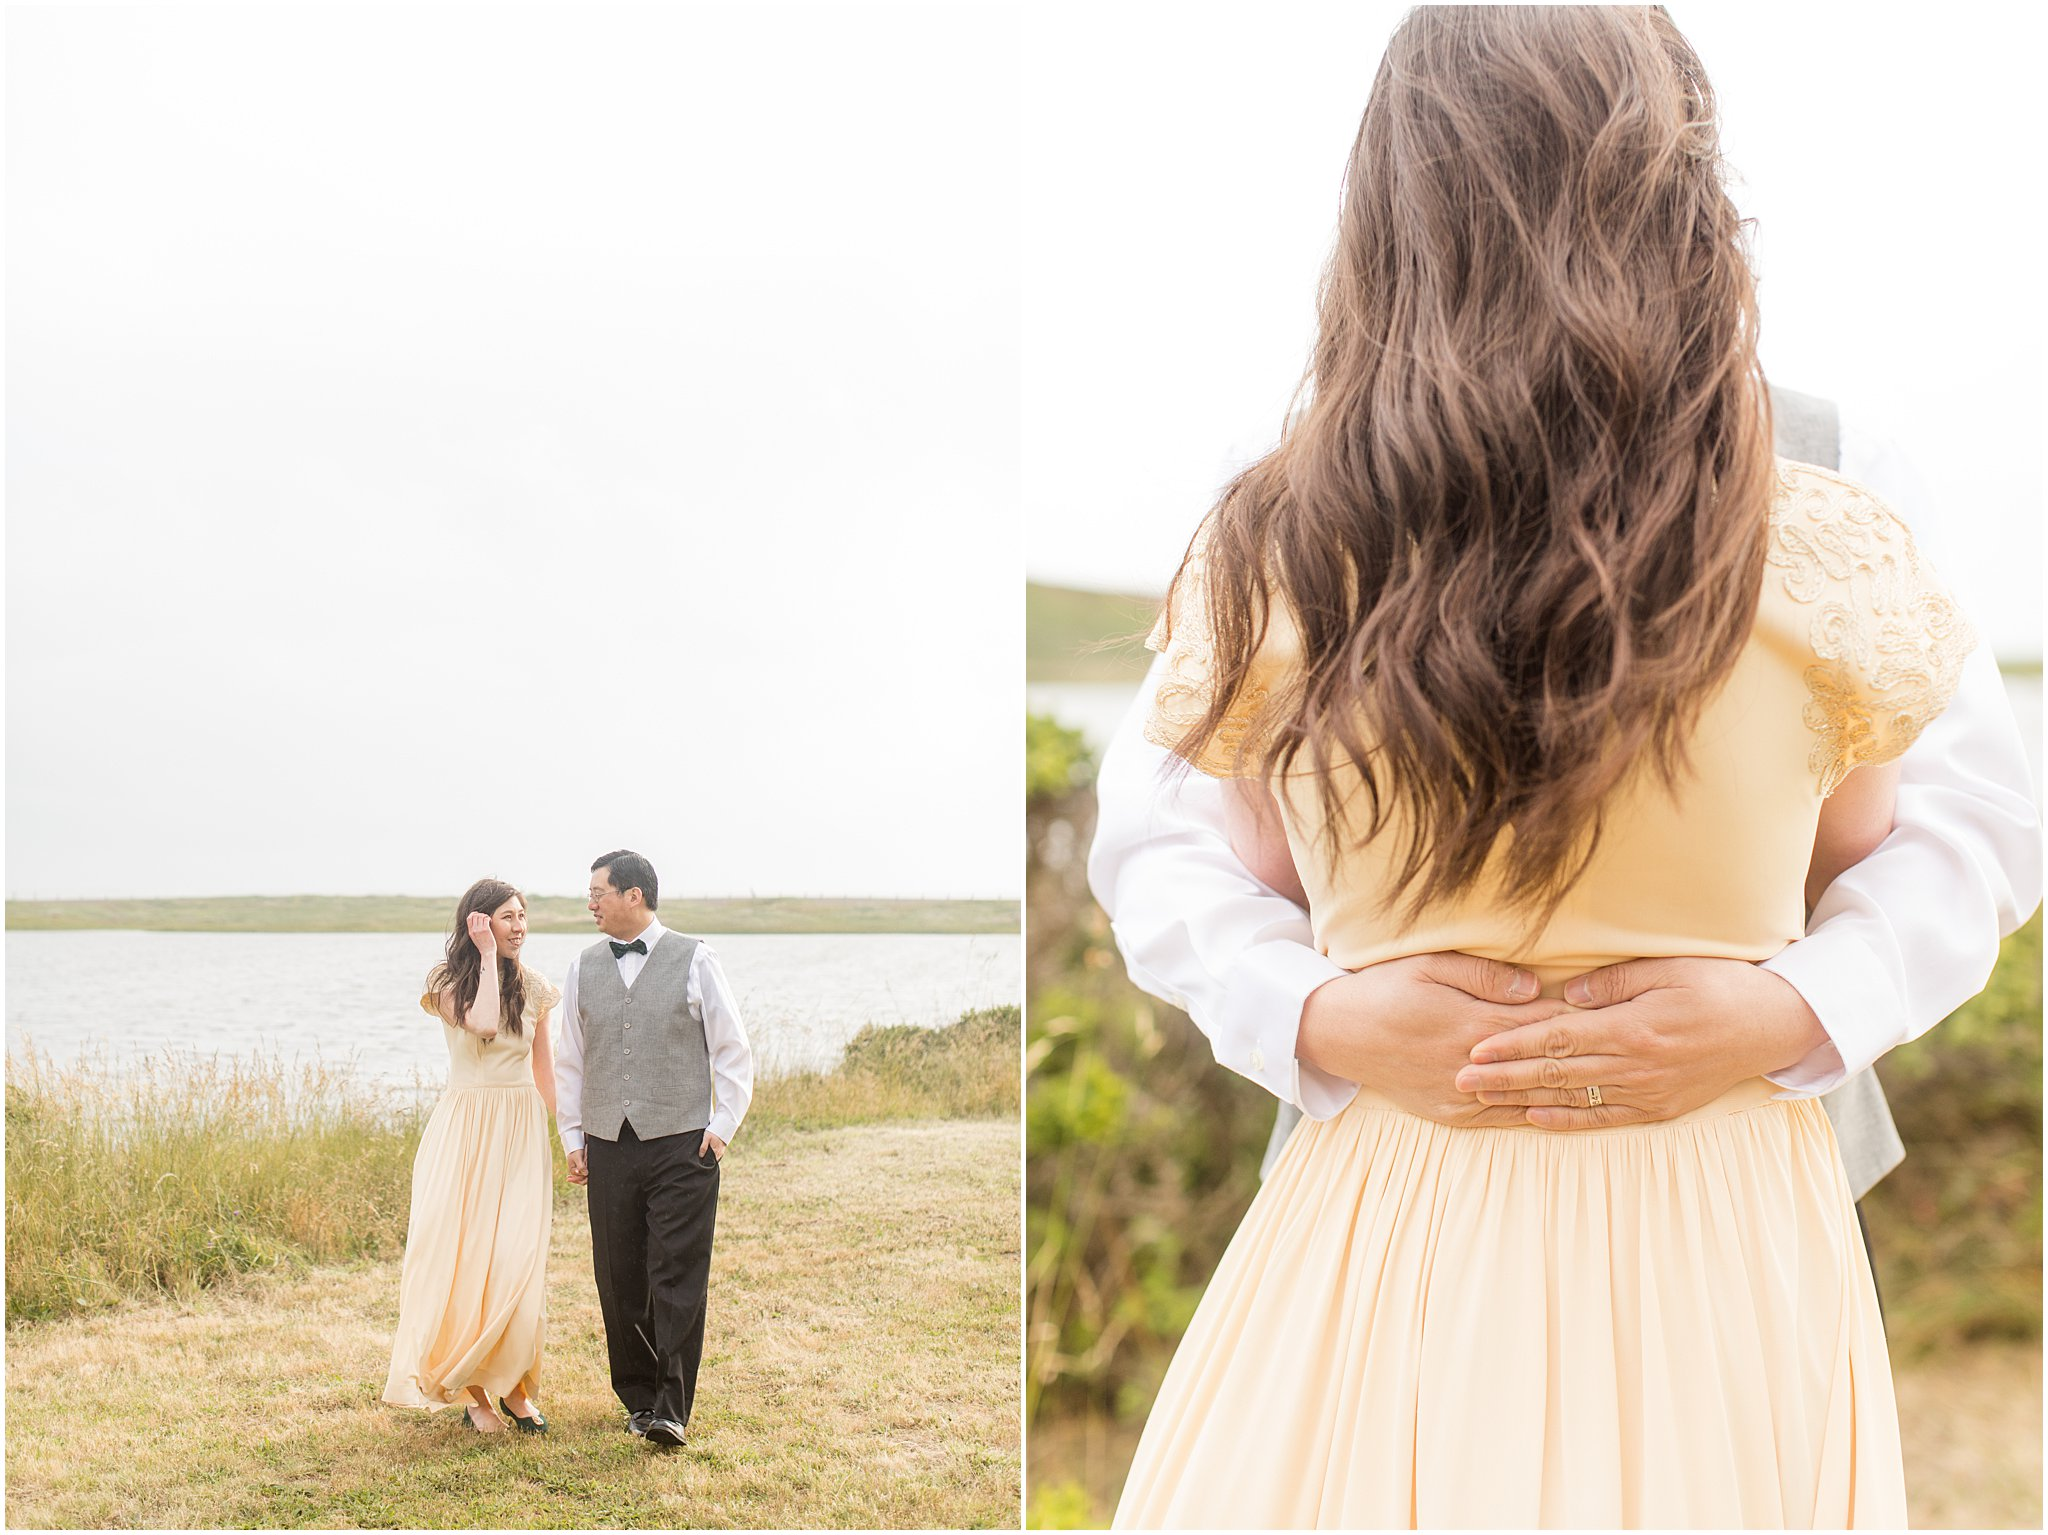 2019 marin headlands san francisco engagement session bay area wedding photographer_0004.jpg